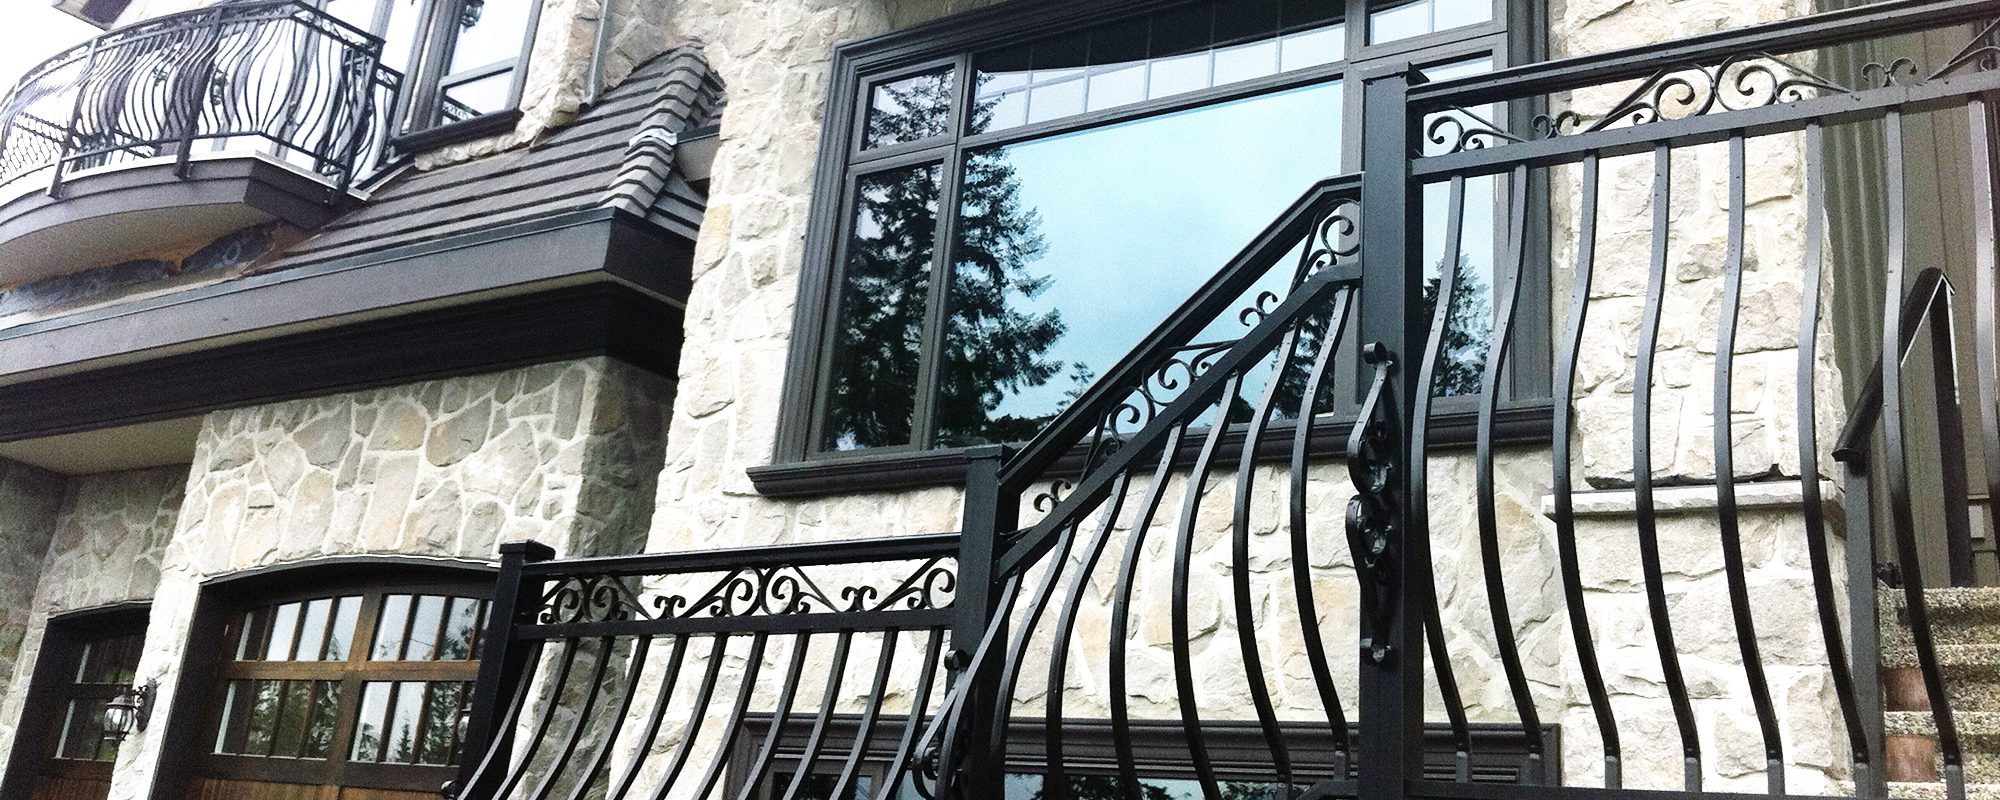 ABC Aluminum & Patio Covers | Railings